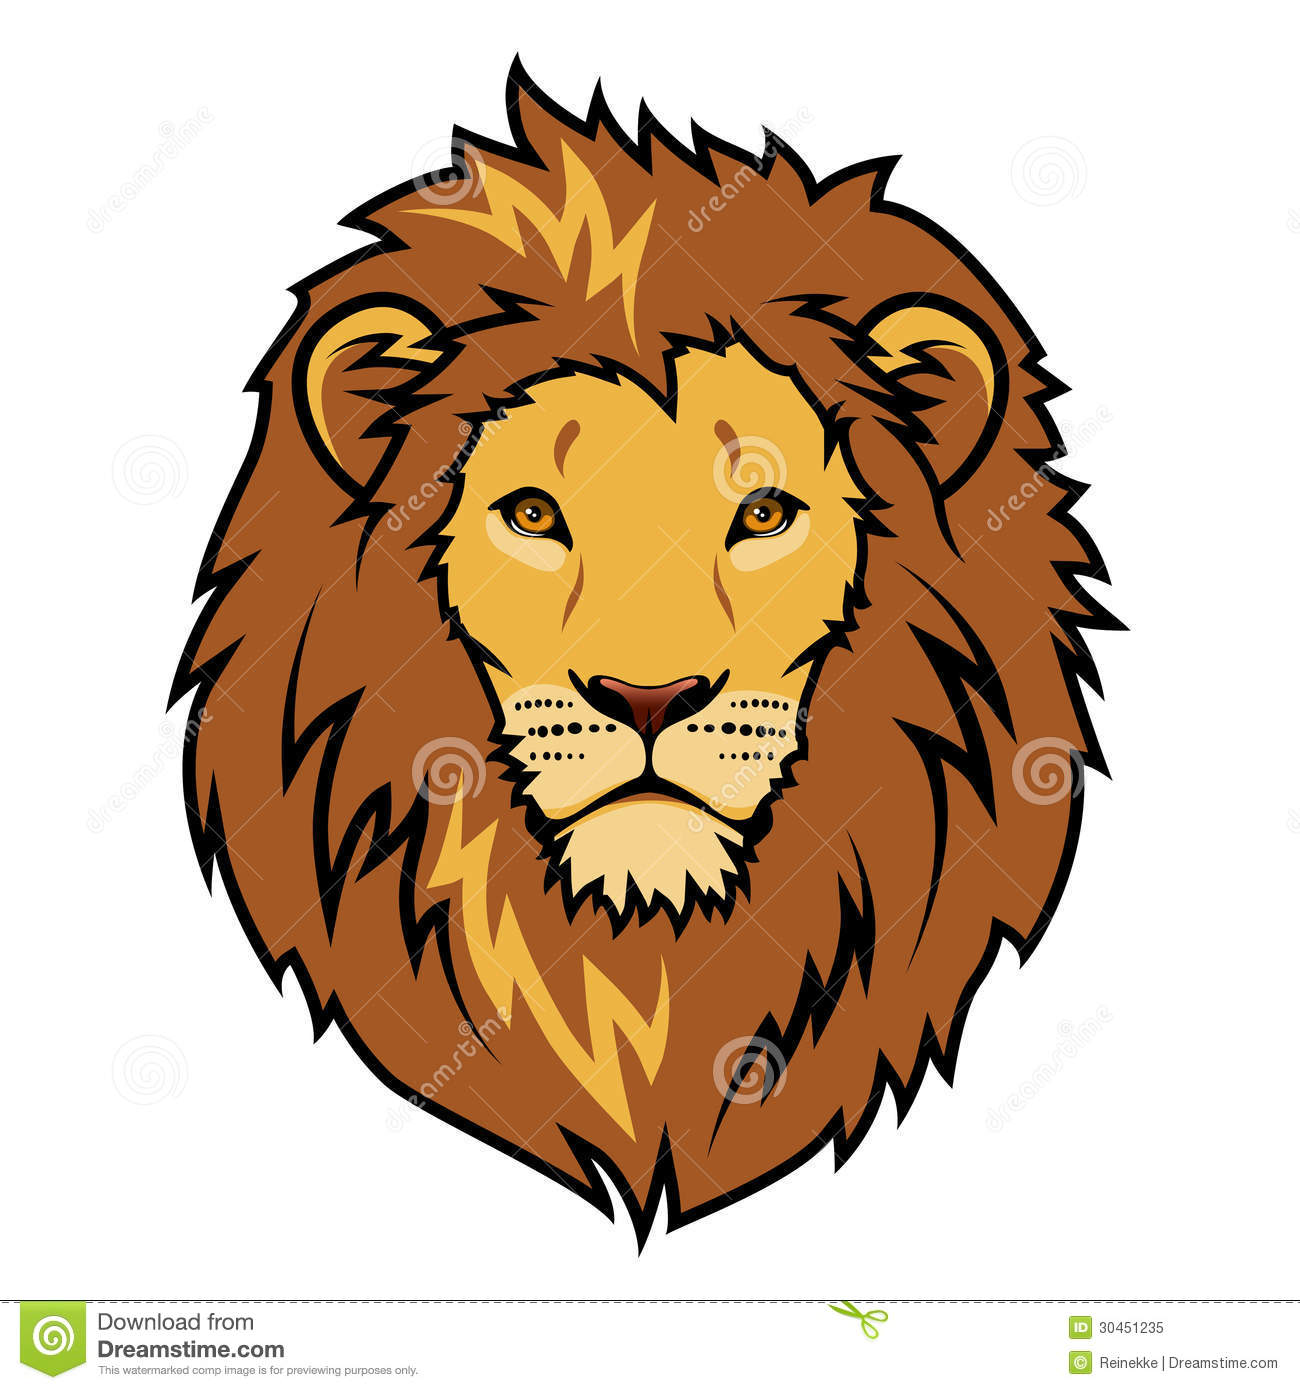 lion face clipart 1 clipart station rh clipartstation com baby lion face clipart lion face clipart black and white